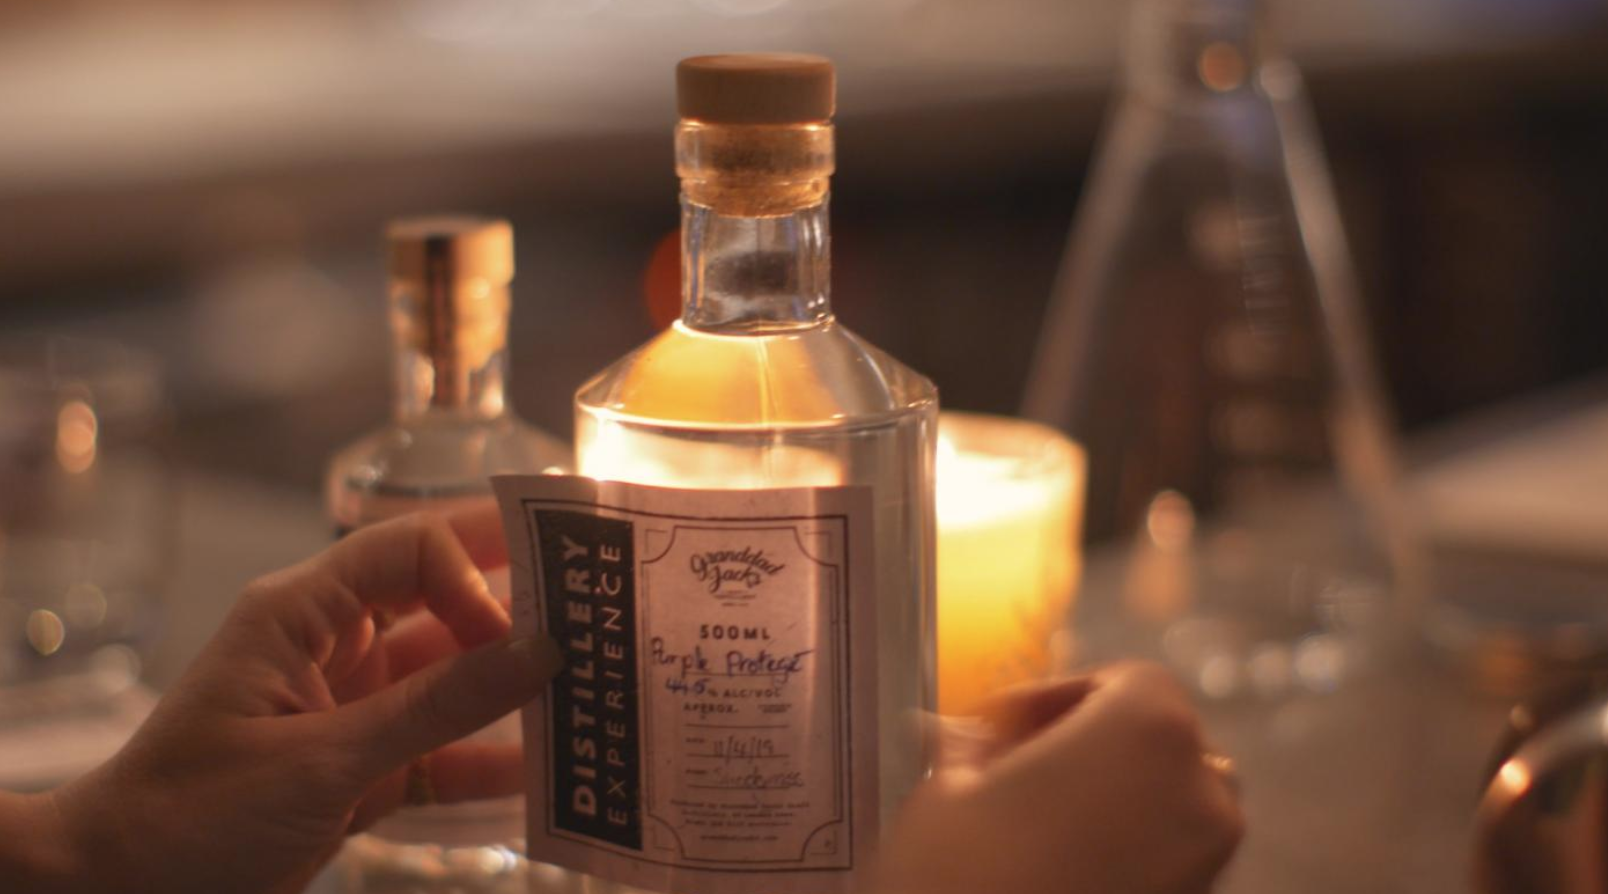 Distillery Experience: Make your own bottle of Gin